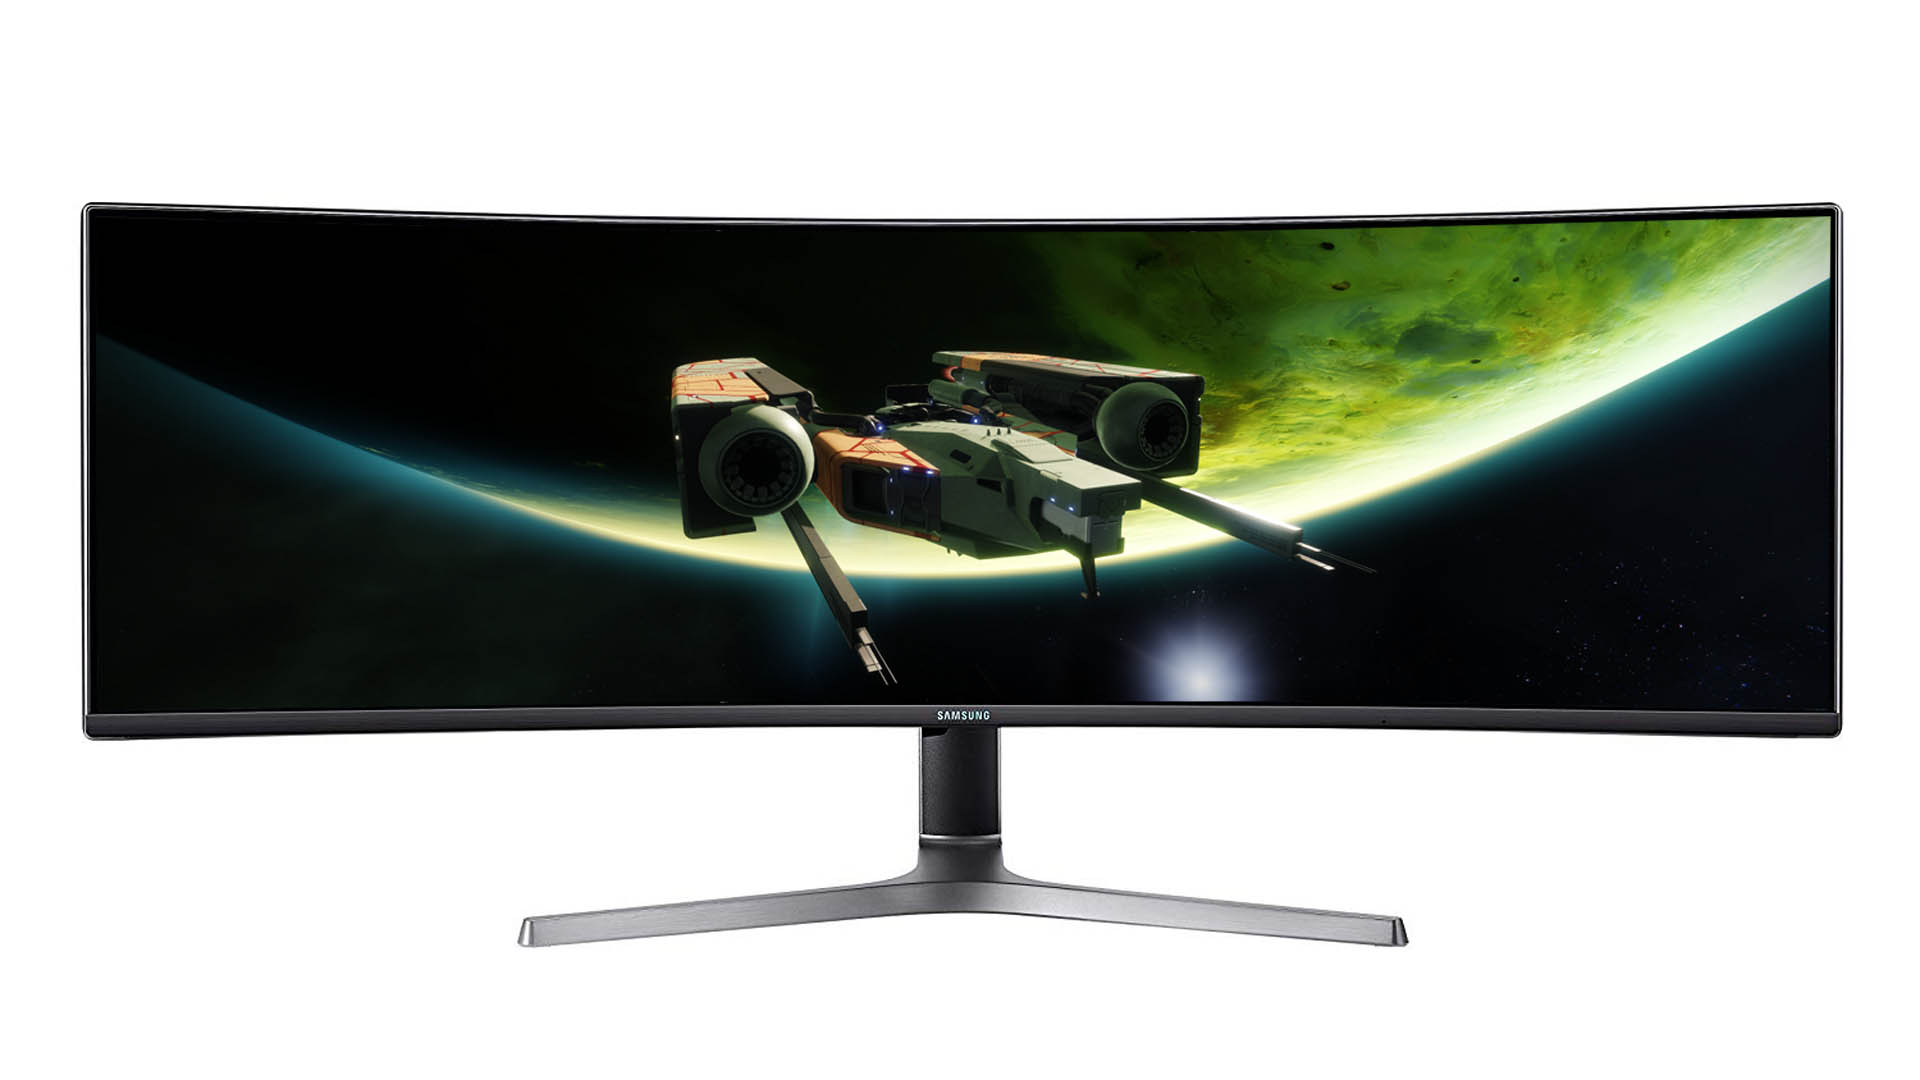 Best G Sync Monitor 2020.What Is The Best Gaming Monitor In 2019 Time To Give Your